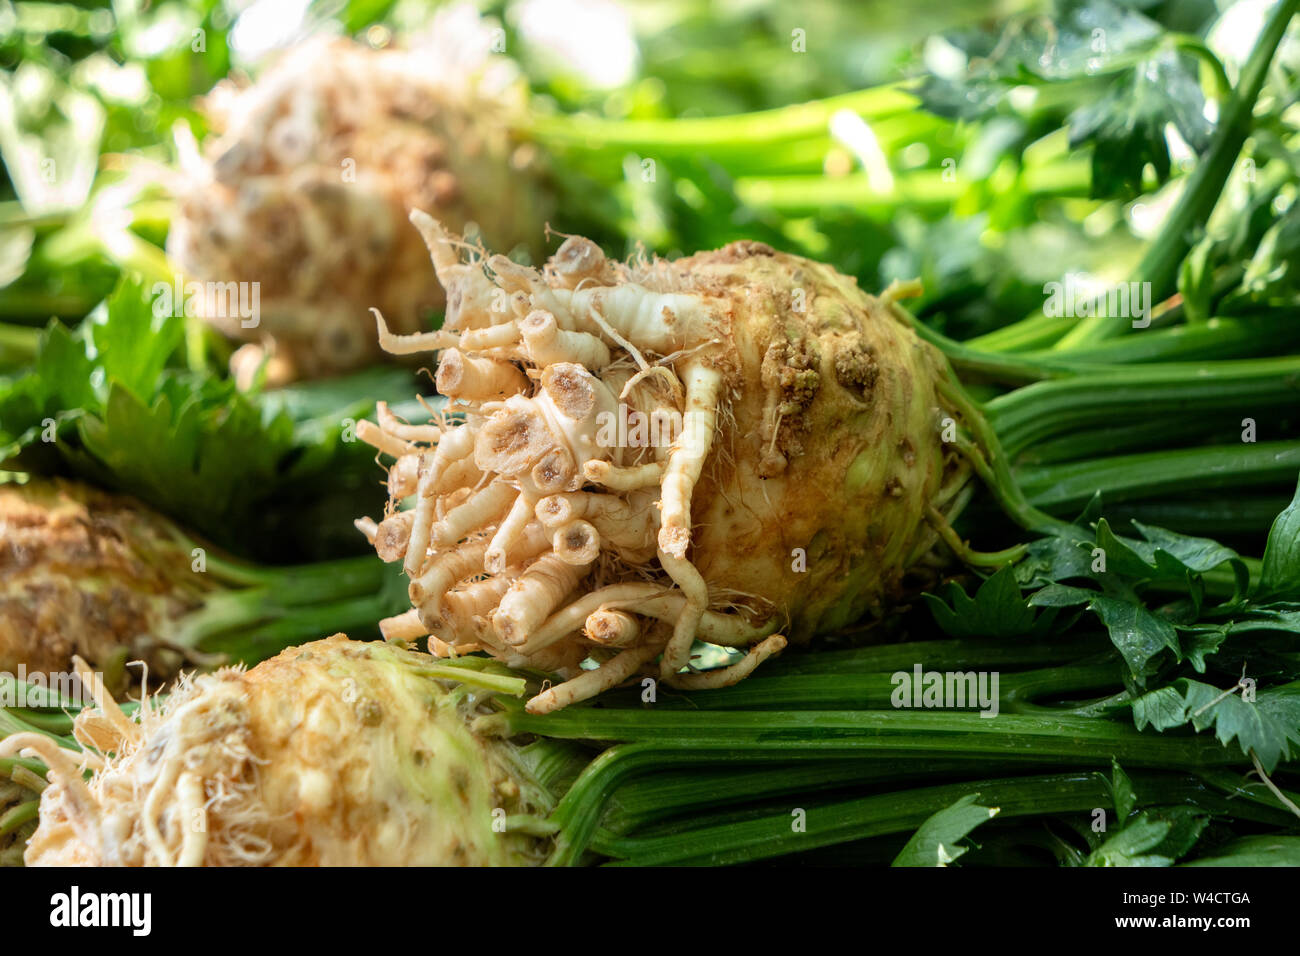 Detail of a pille of celeriacs with stalks and leaves at farmers market. Stock Photo